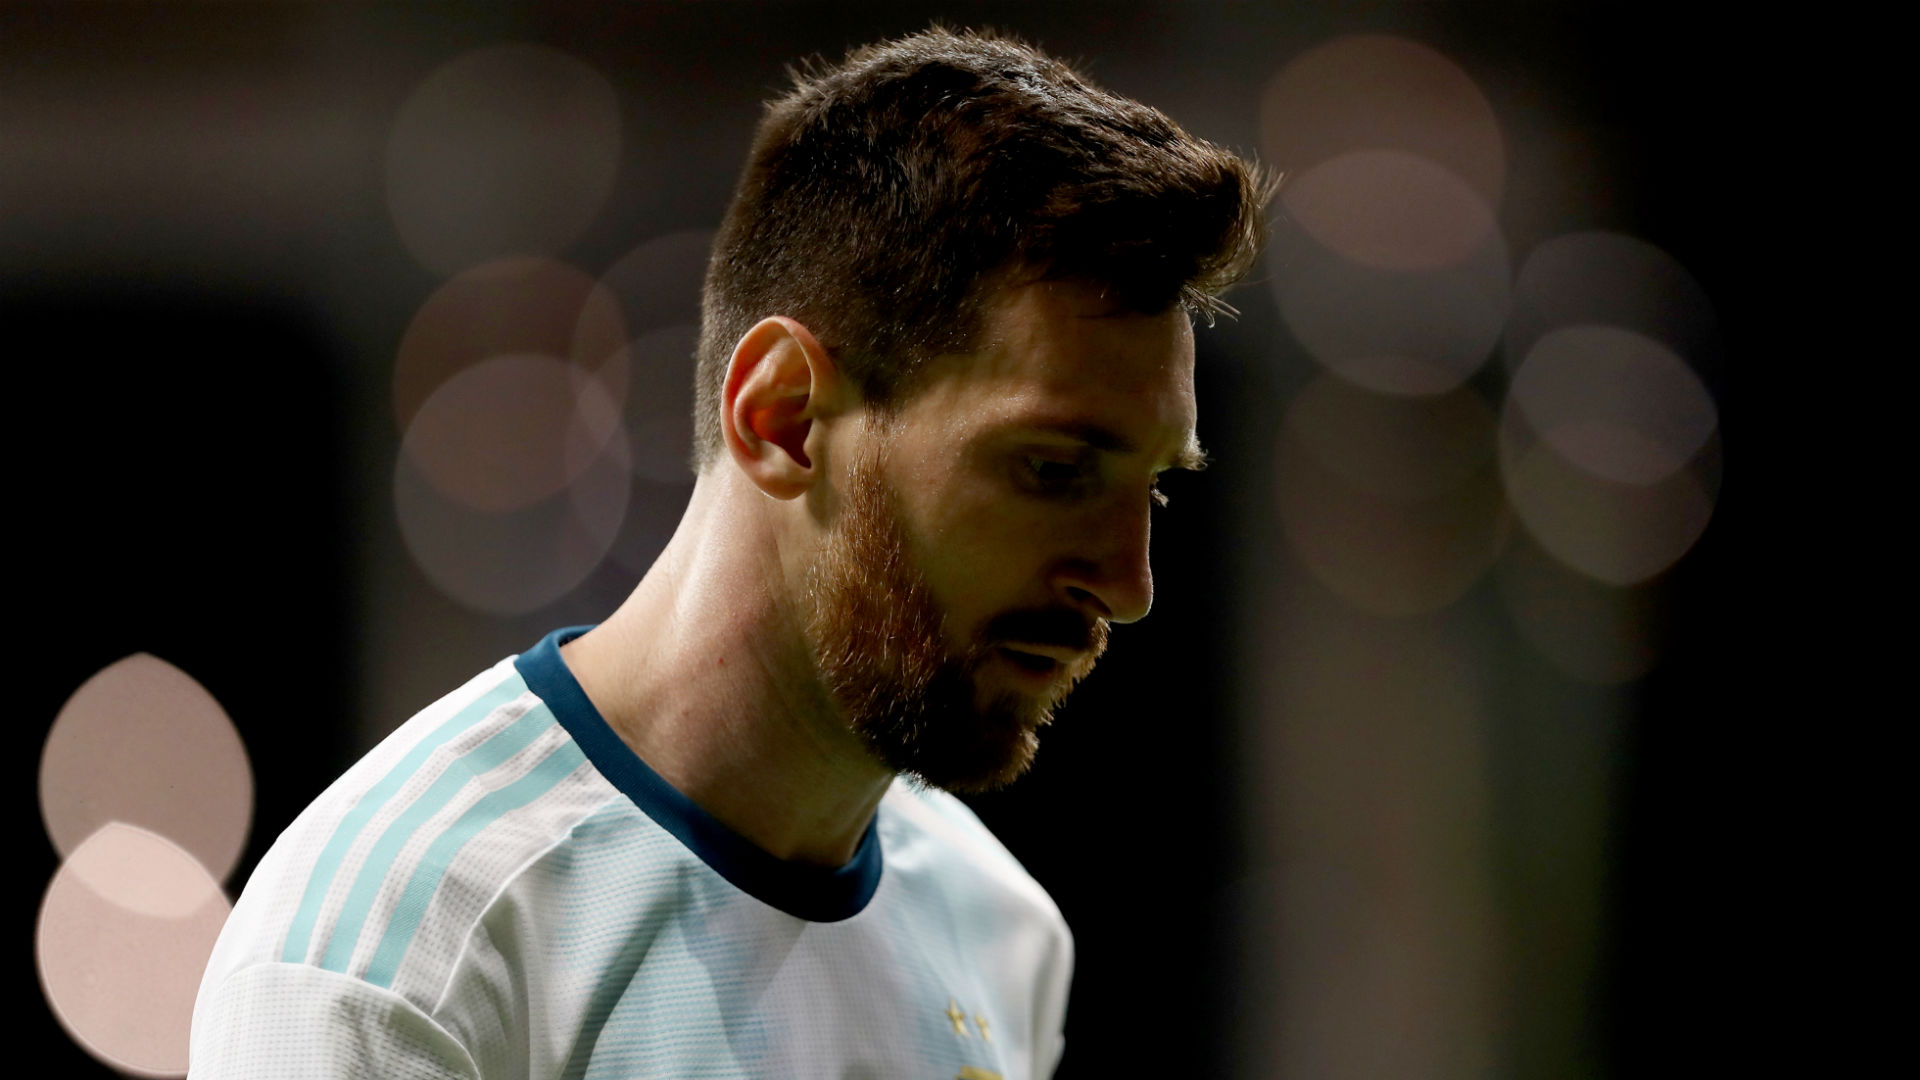 Lionel Messi urges Argentina 'to think positively'